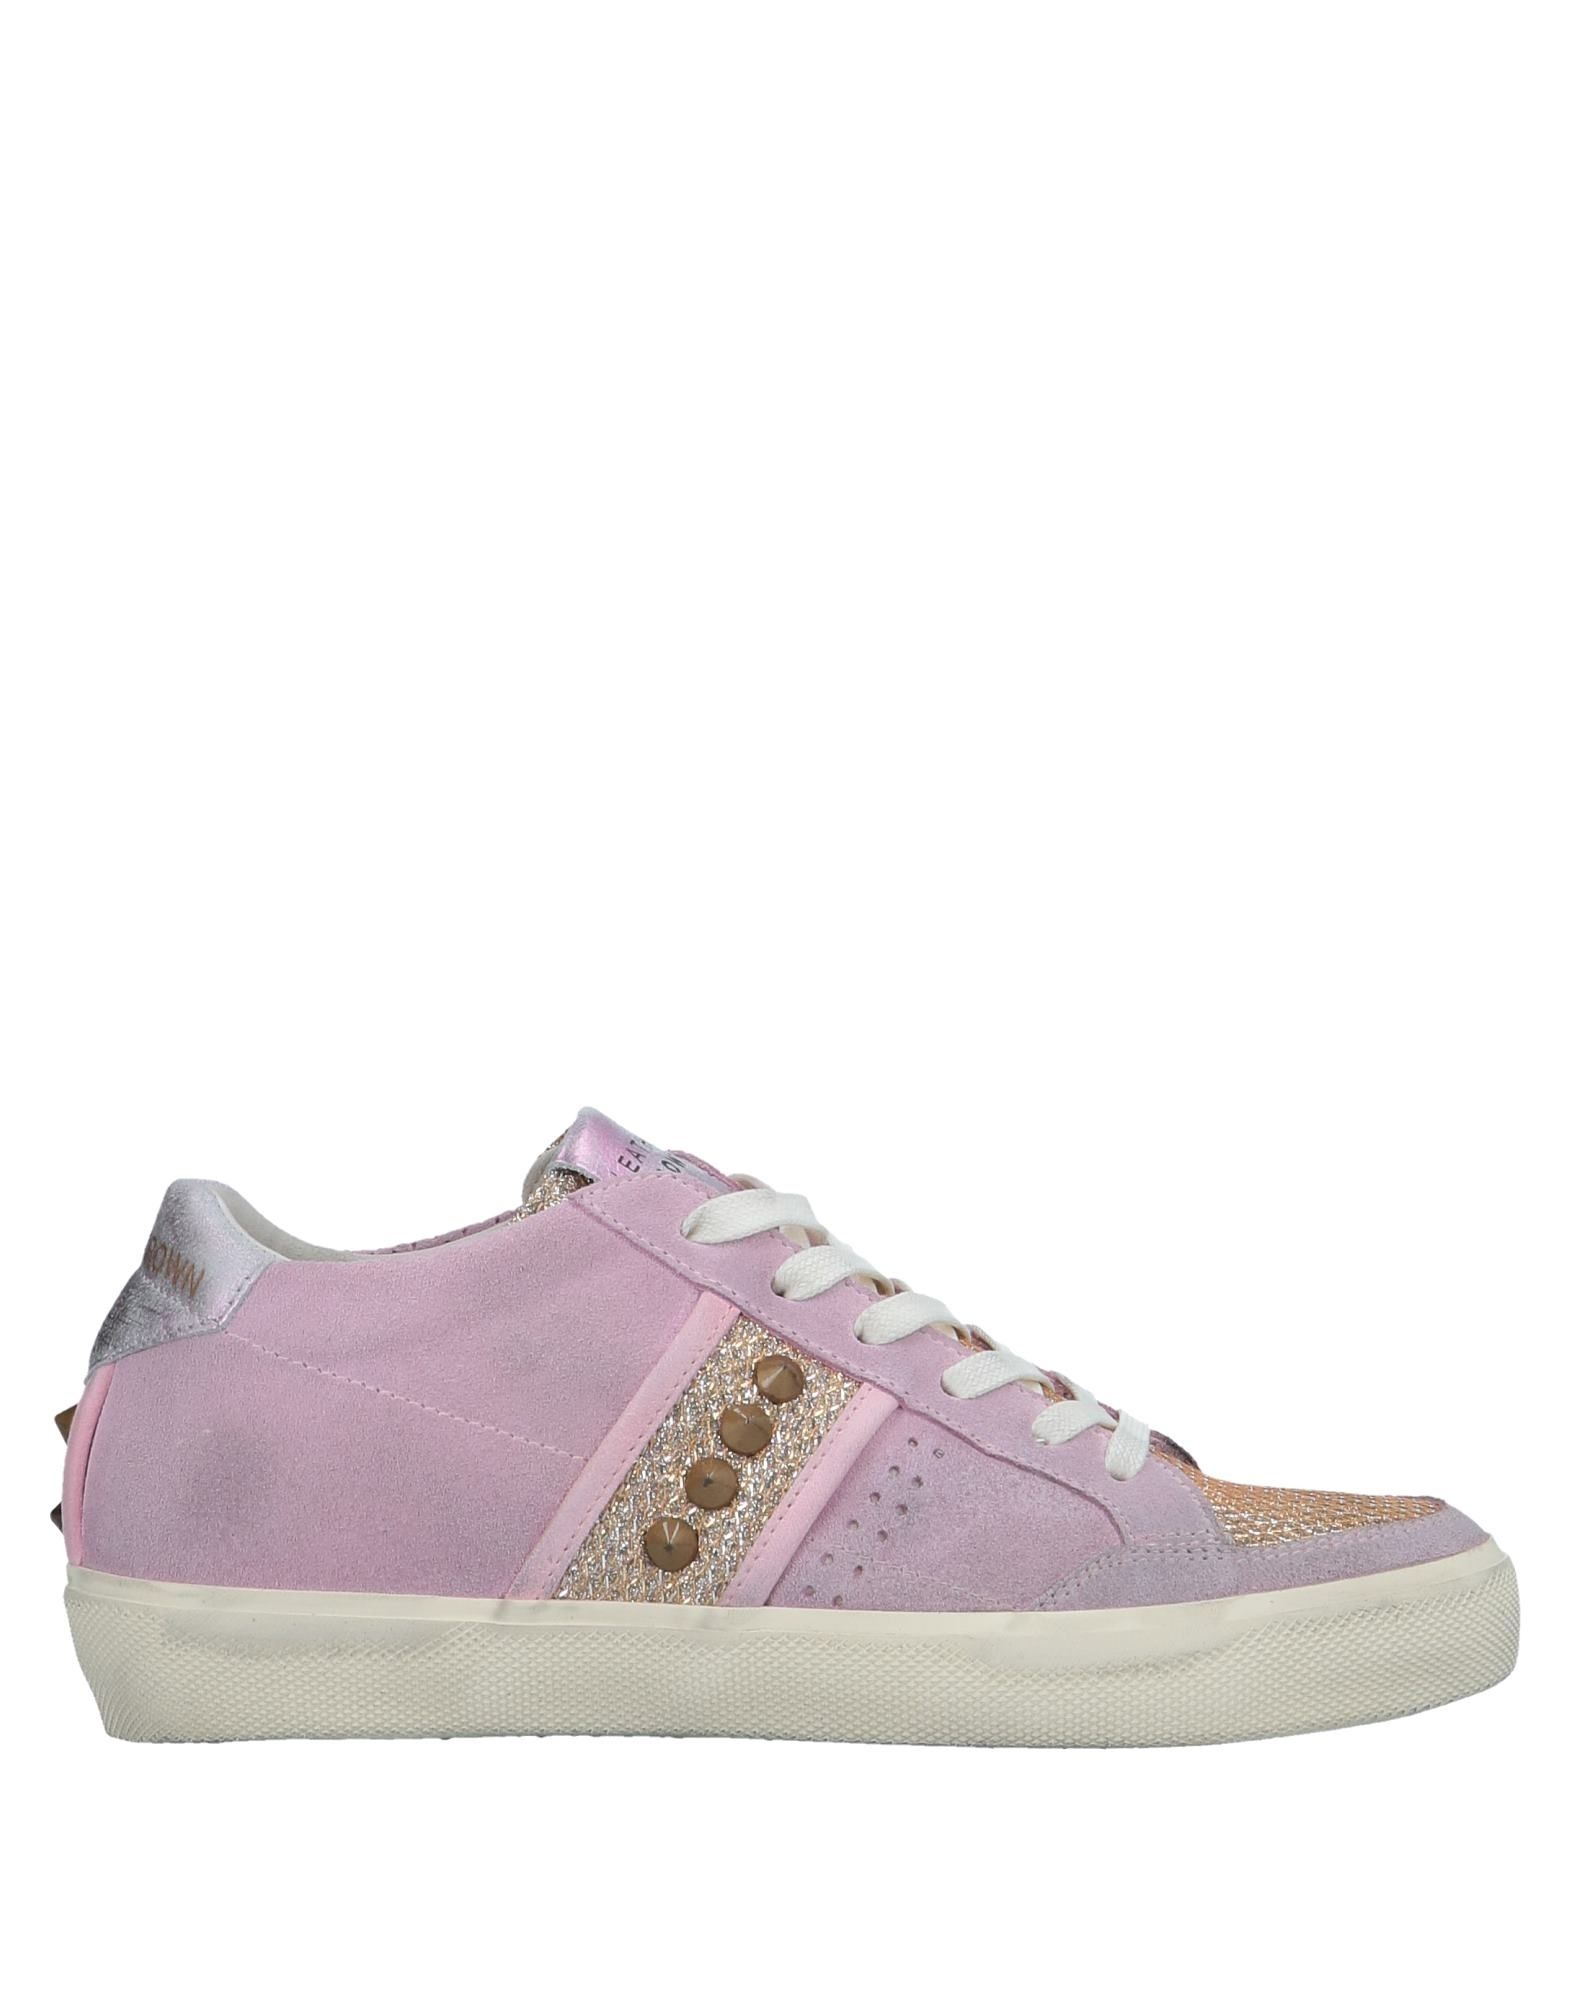 Leather Crown Sneakers - Women Leather Crown Sneakers online on 11565003BD  United Kingdom - 11565003BD on 2123b9